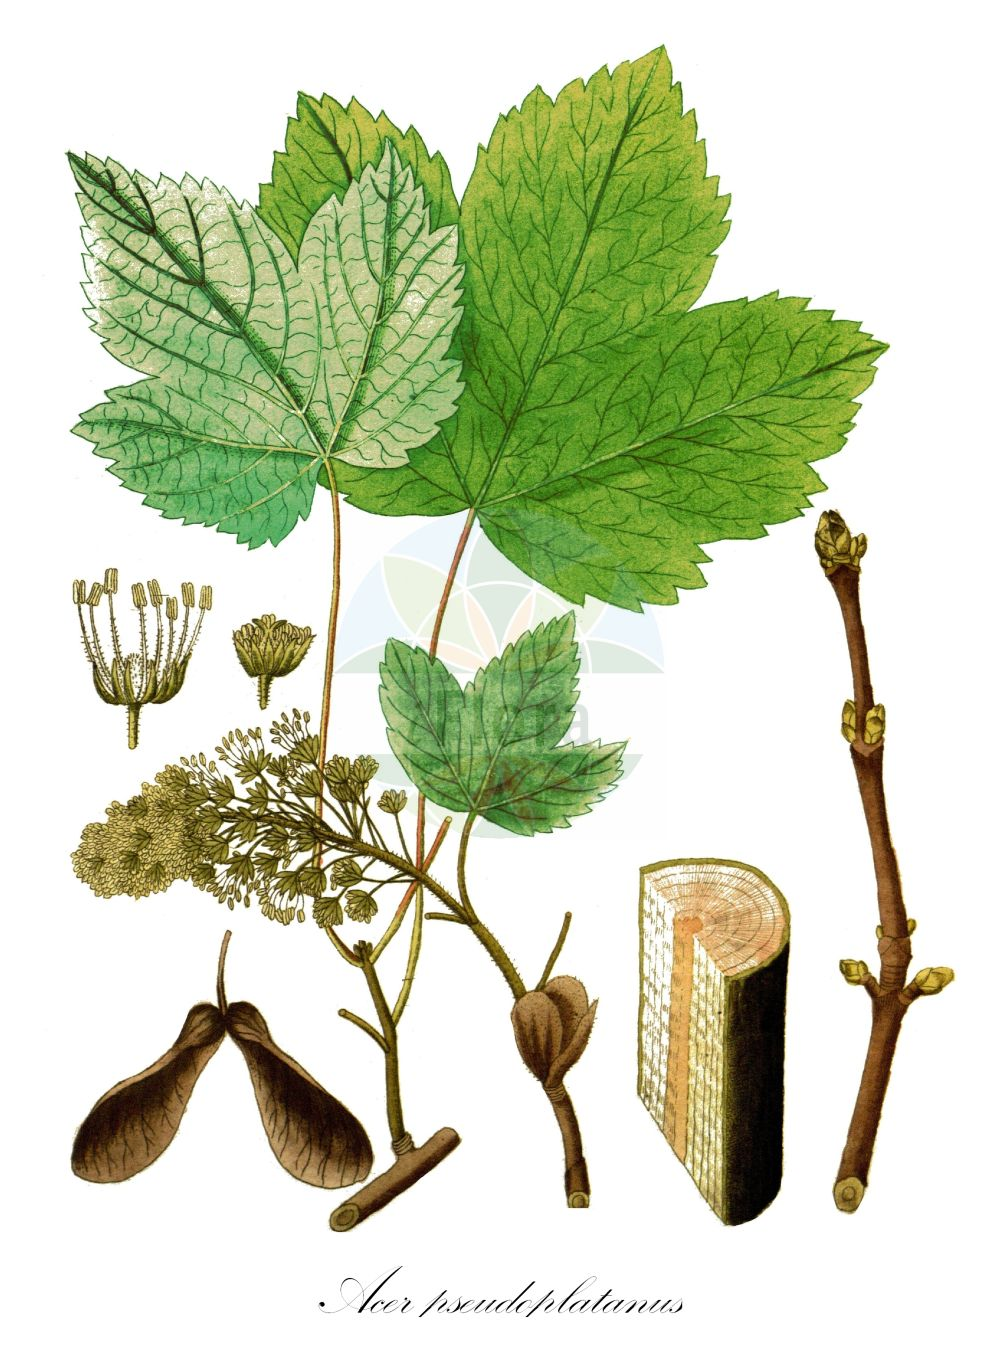 Historische Abbildung von Acer pseudoplatanus (Berg-Ahorn - Sycamore). Das Bild zeigt Blatt, Bluete, Frucht und Same. ---- Historical Drawing of Acer pseudoplatanus (Berg-Ahorn - Sycamore).The image is showing leaf, flower, fruit and seed. (Acer pseudoplatanus,Berg-Ahorn,Sycamore,Acer quinquelobum,Acer villosum,Trauben-Ahorn,Wald-Ahorn,Weiss-Ahorn,Common  Maple,Great Maple,Plane Maple,Acer,Ahorn,Maple,Sapindaceae,Seifenbaumgewaechse,Soapberry family,Blatt,Bluete,Frucht,Same,leaf,flower,fruit,seed,Vietz (1800-1822))